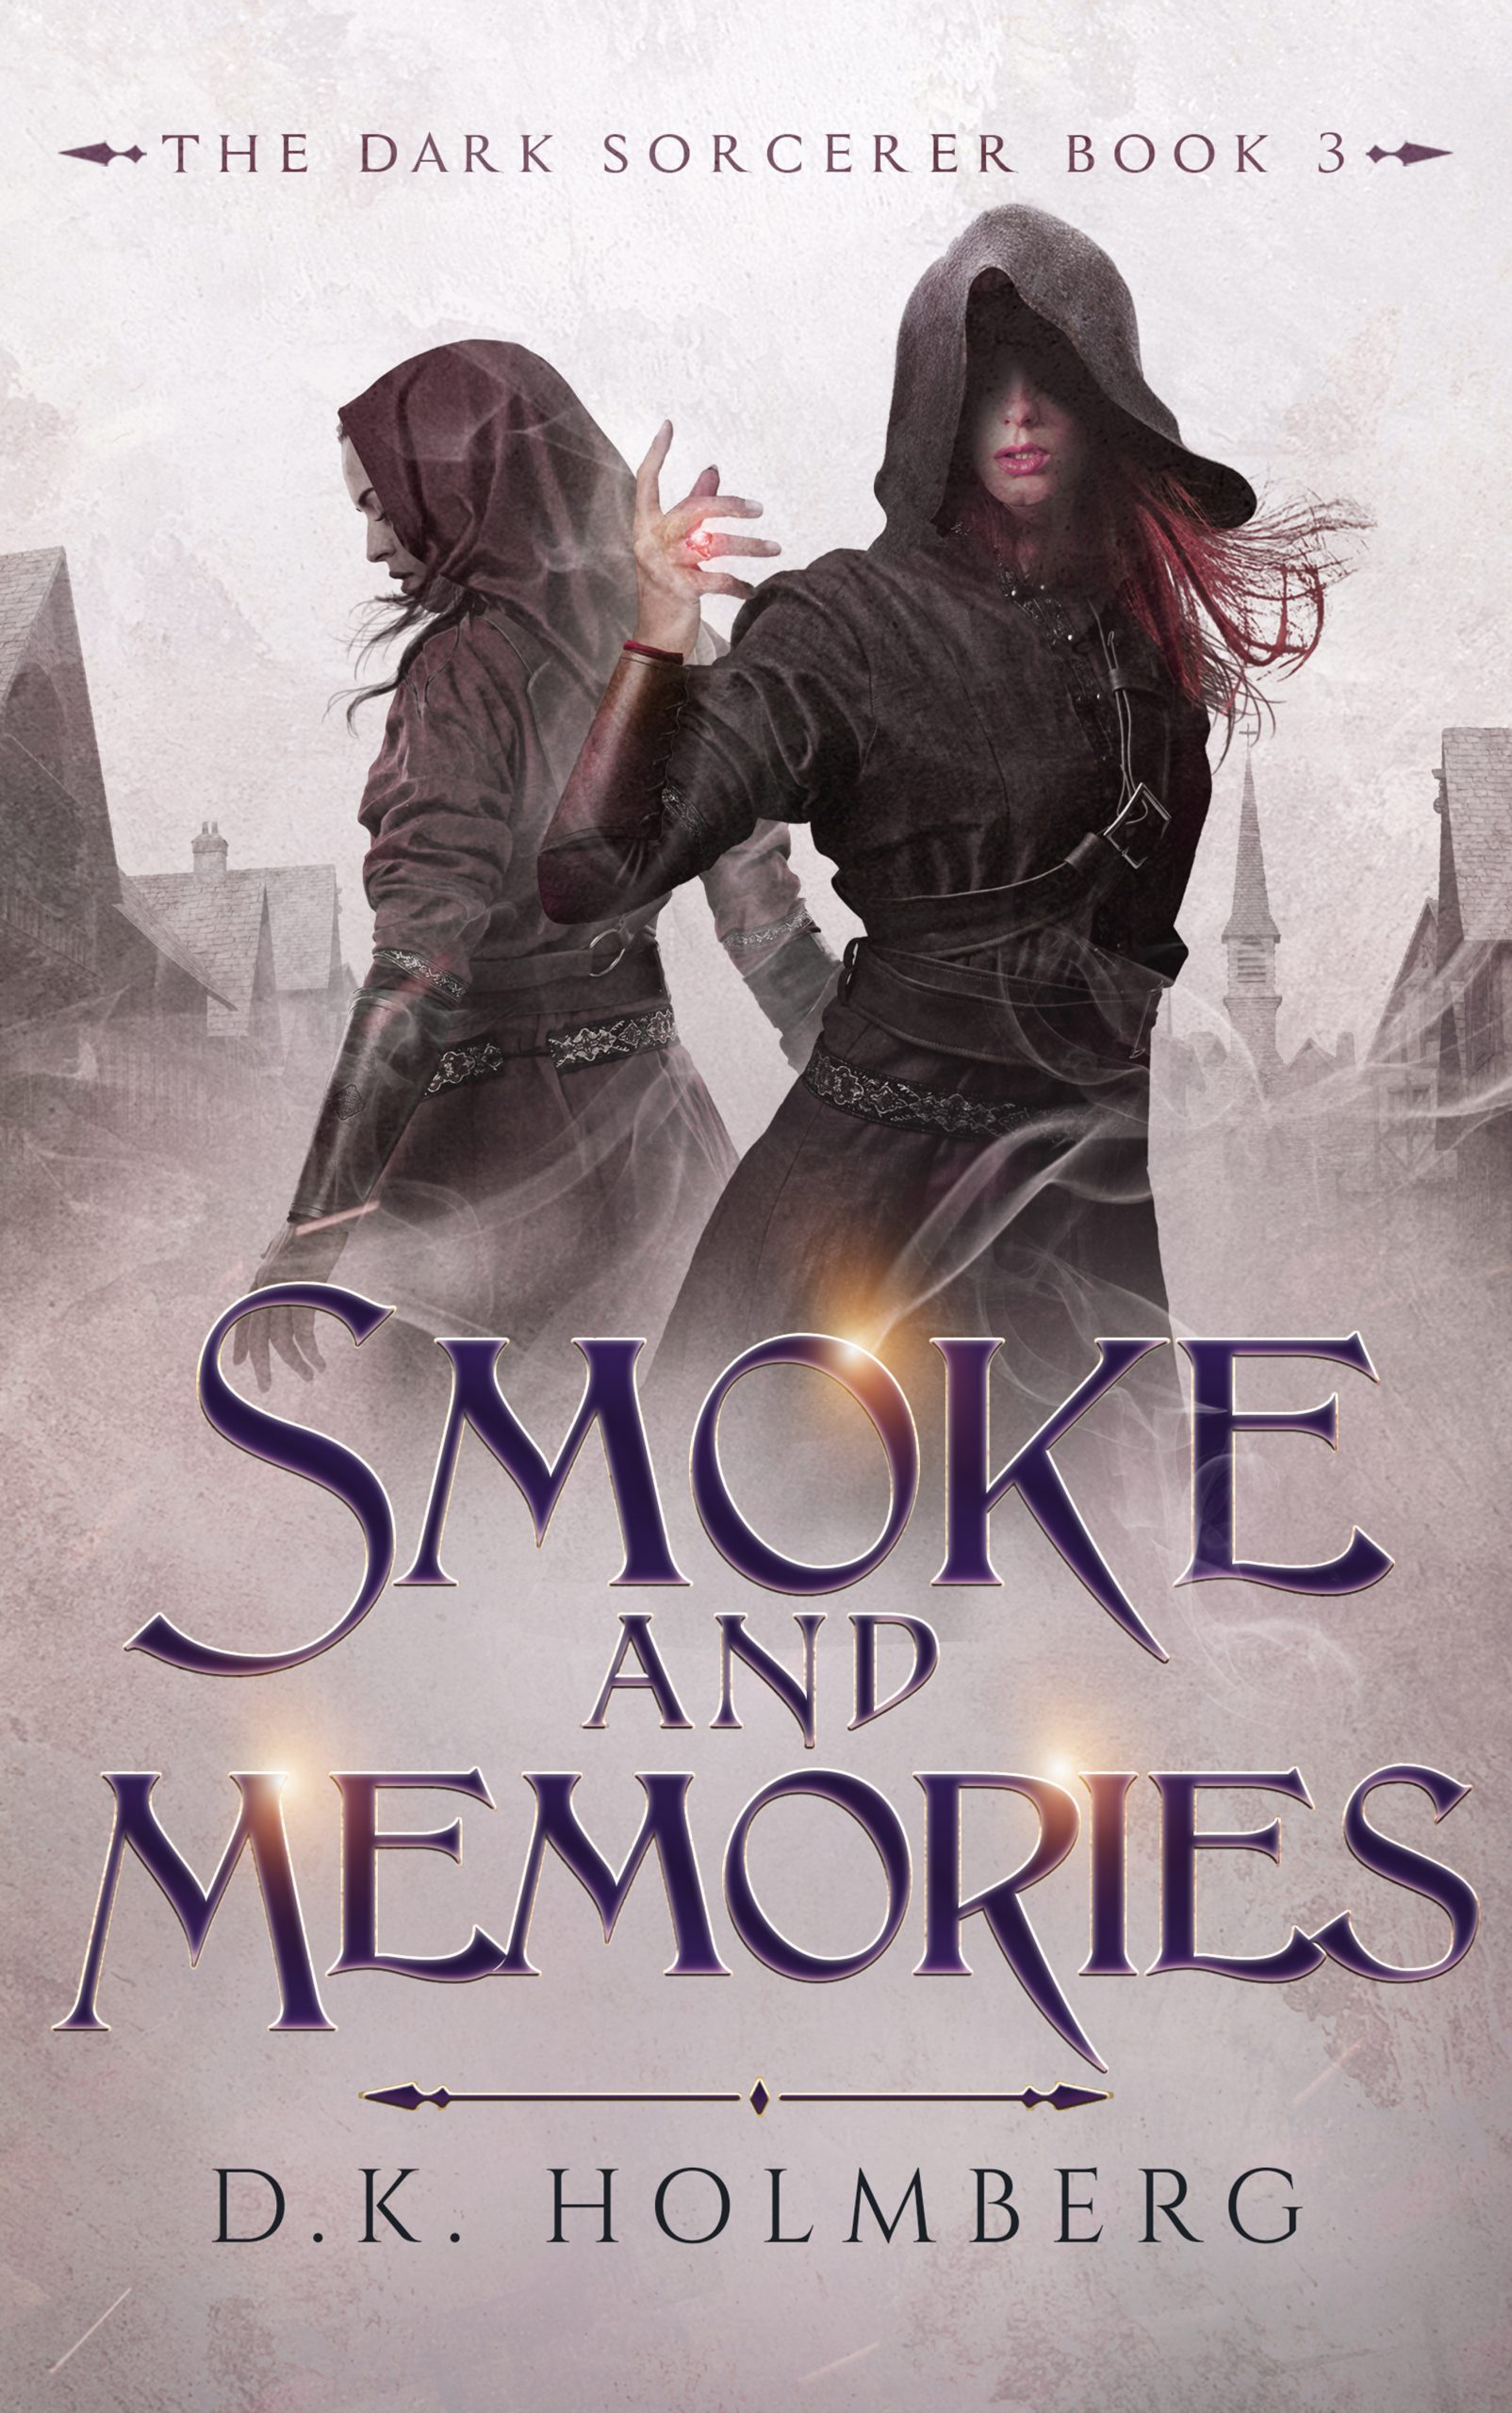 https://www.dkholmberg.com/wp-content/uploads/2021/07/DS-3-Smoke-and-Memories-eBook-scaled.jpg